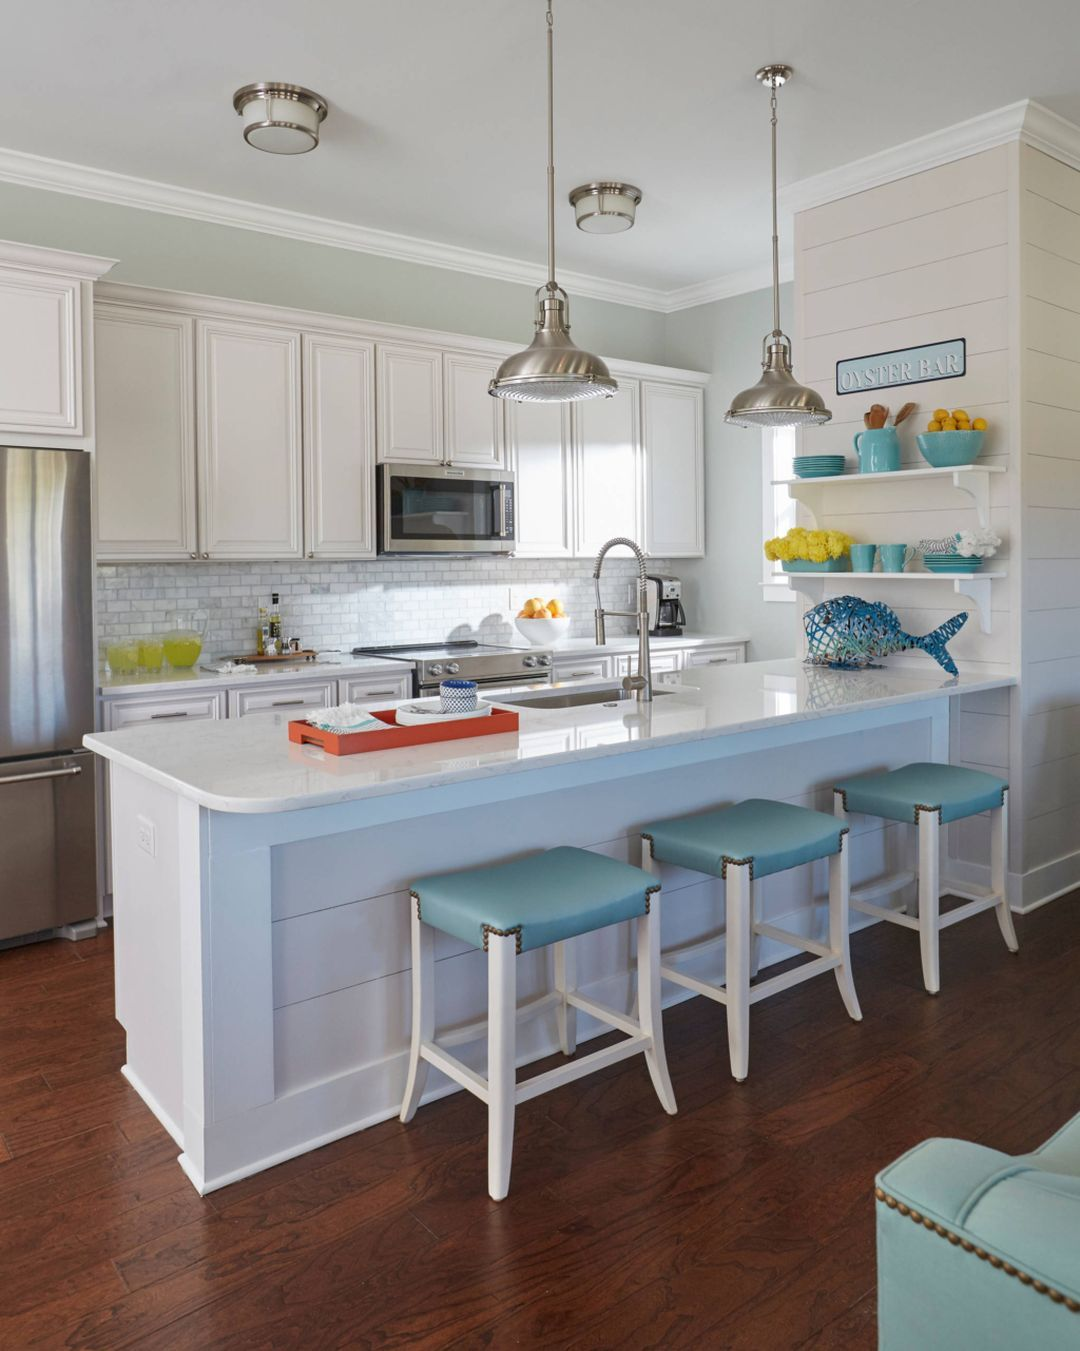 34 Cool and Beautiful Kitchen Design Ideas | Küche